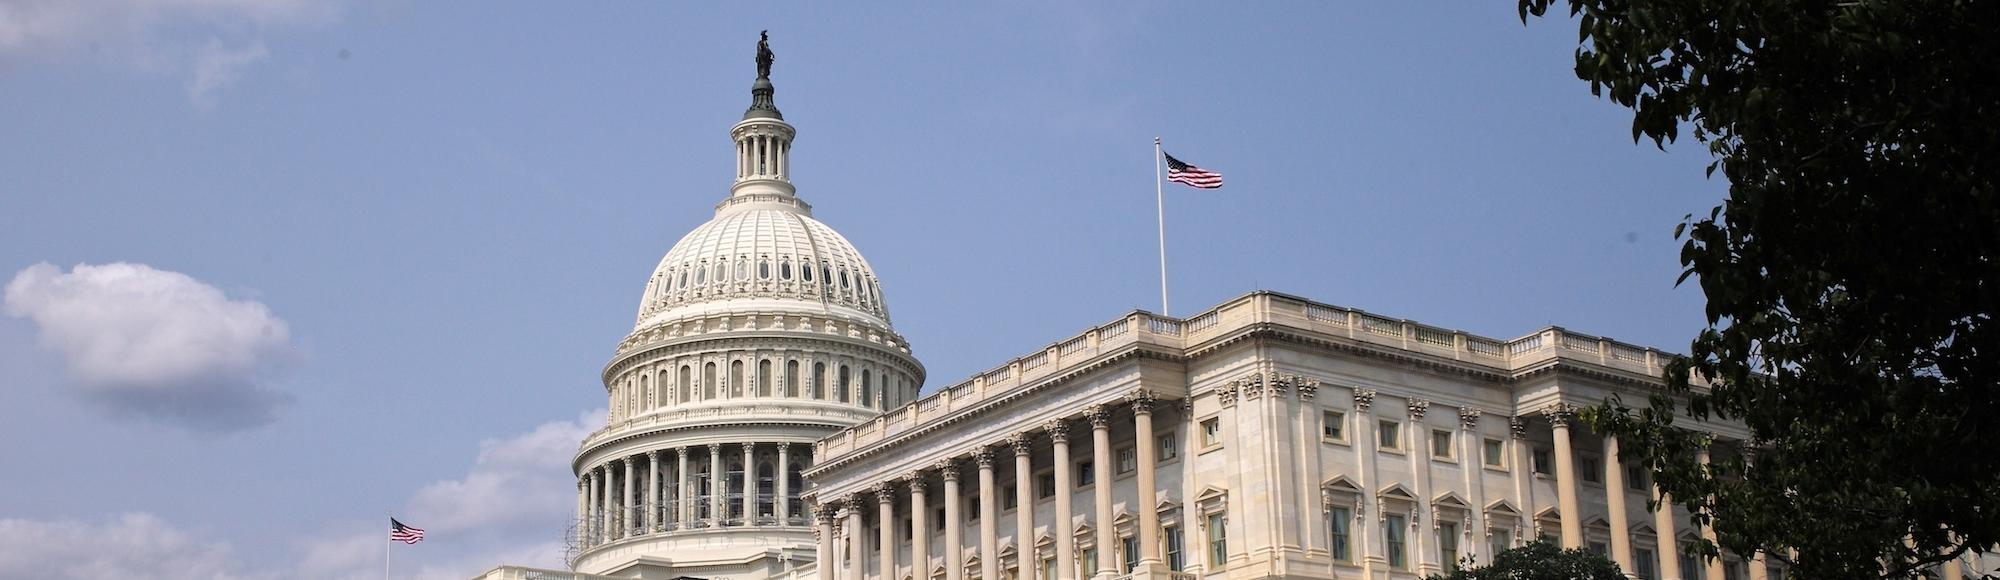 Primary Sources: How a New FOIA Bill Could Force More Government Transparency